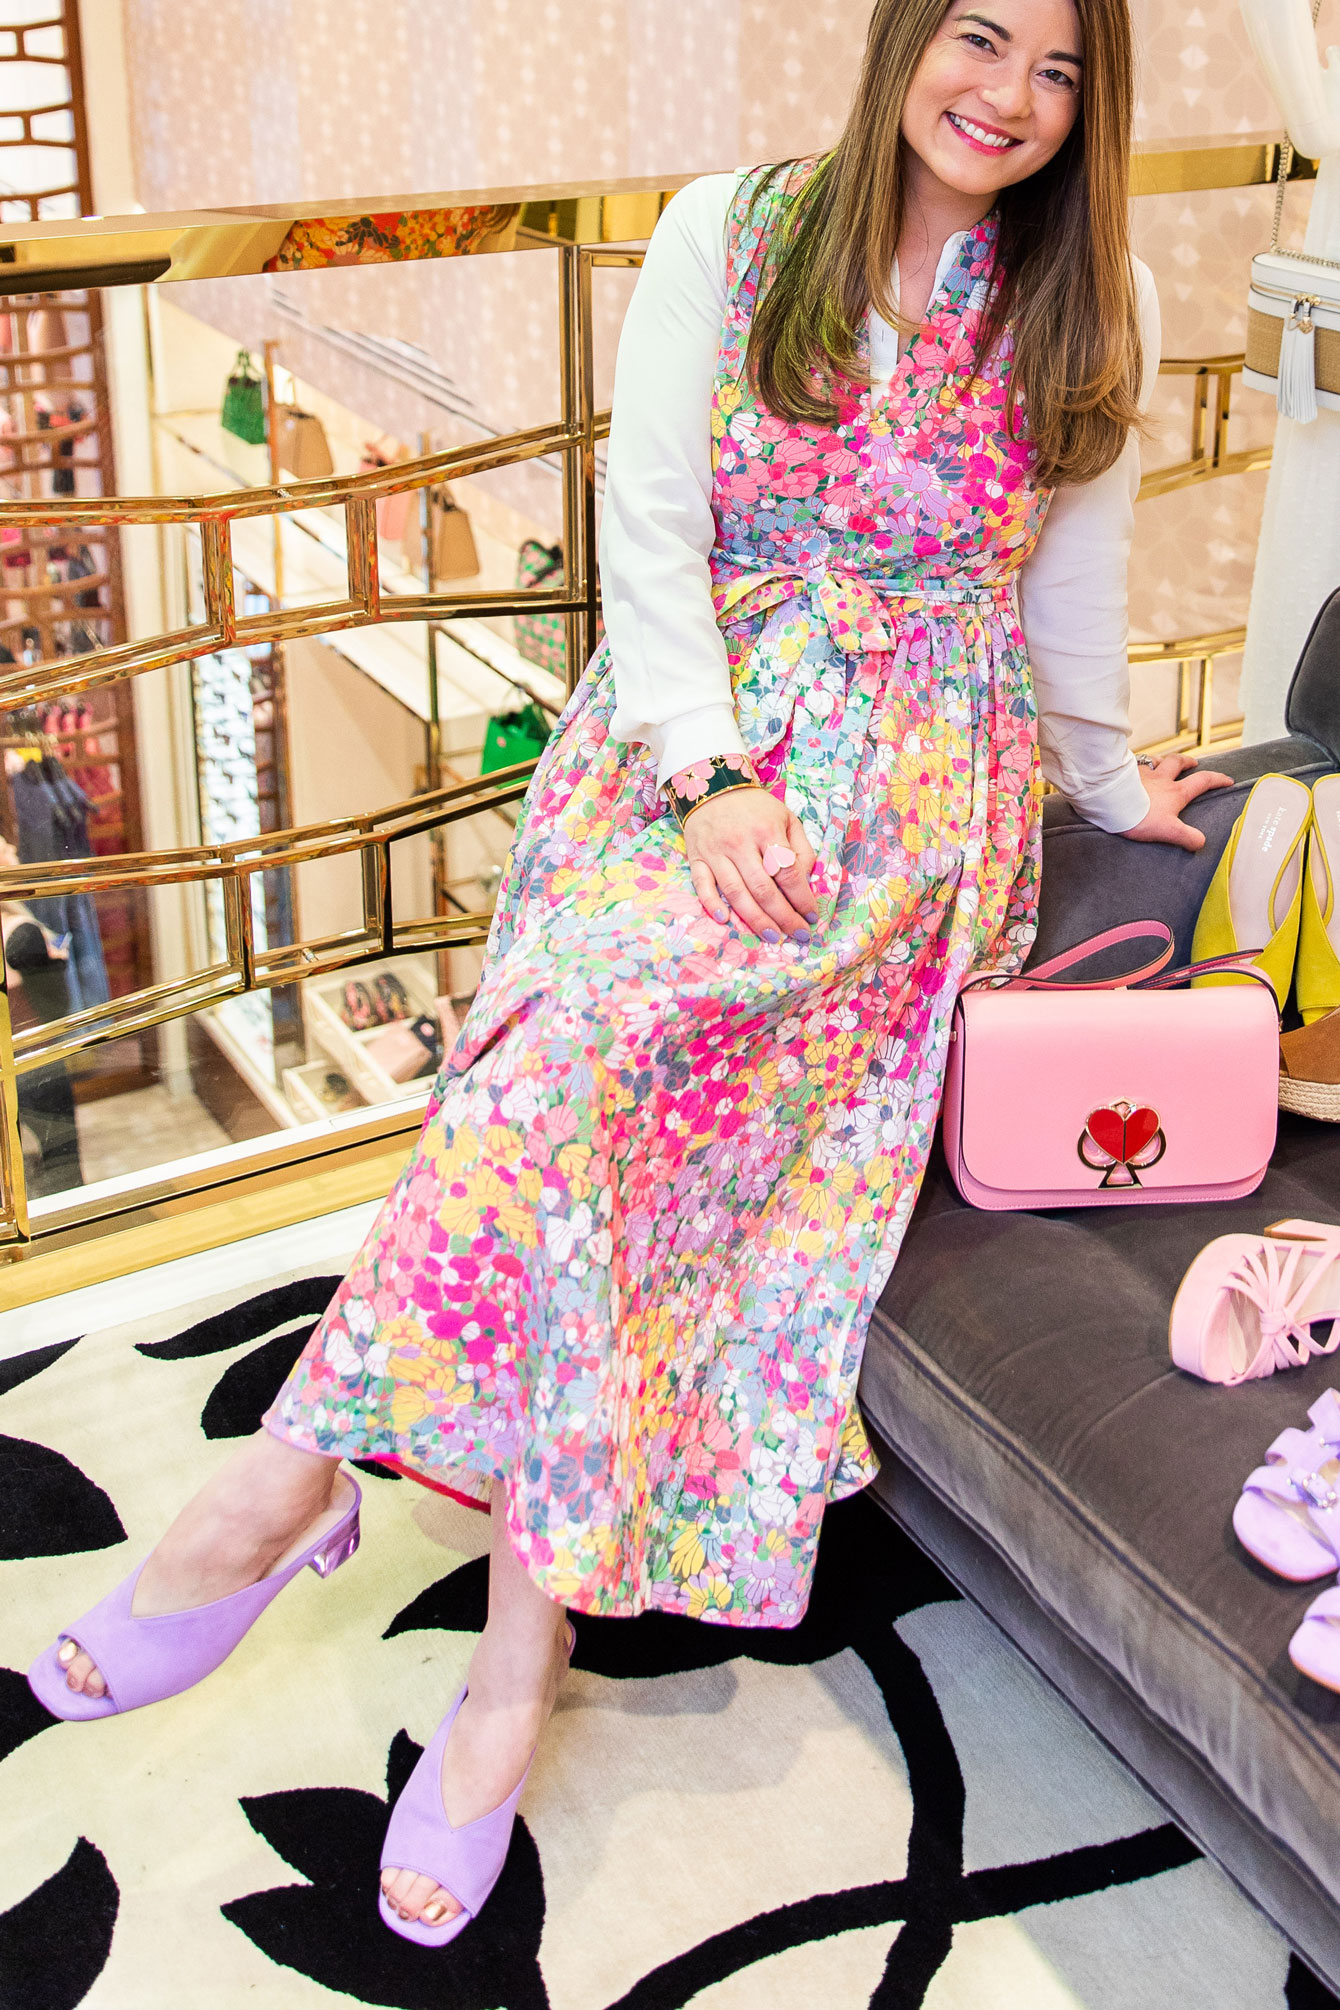 Jennifer Lake Kate Spade Pastel Floral Dress